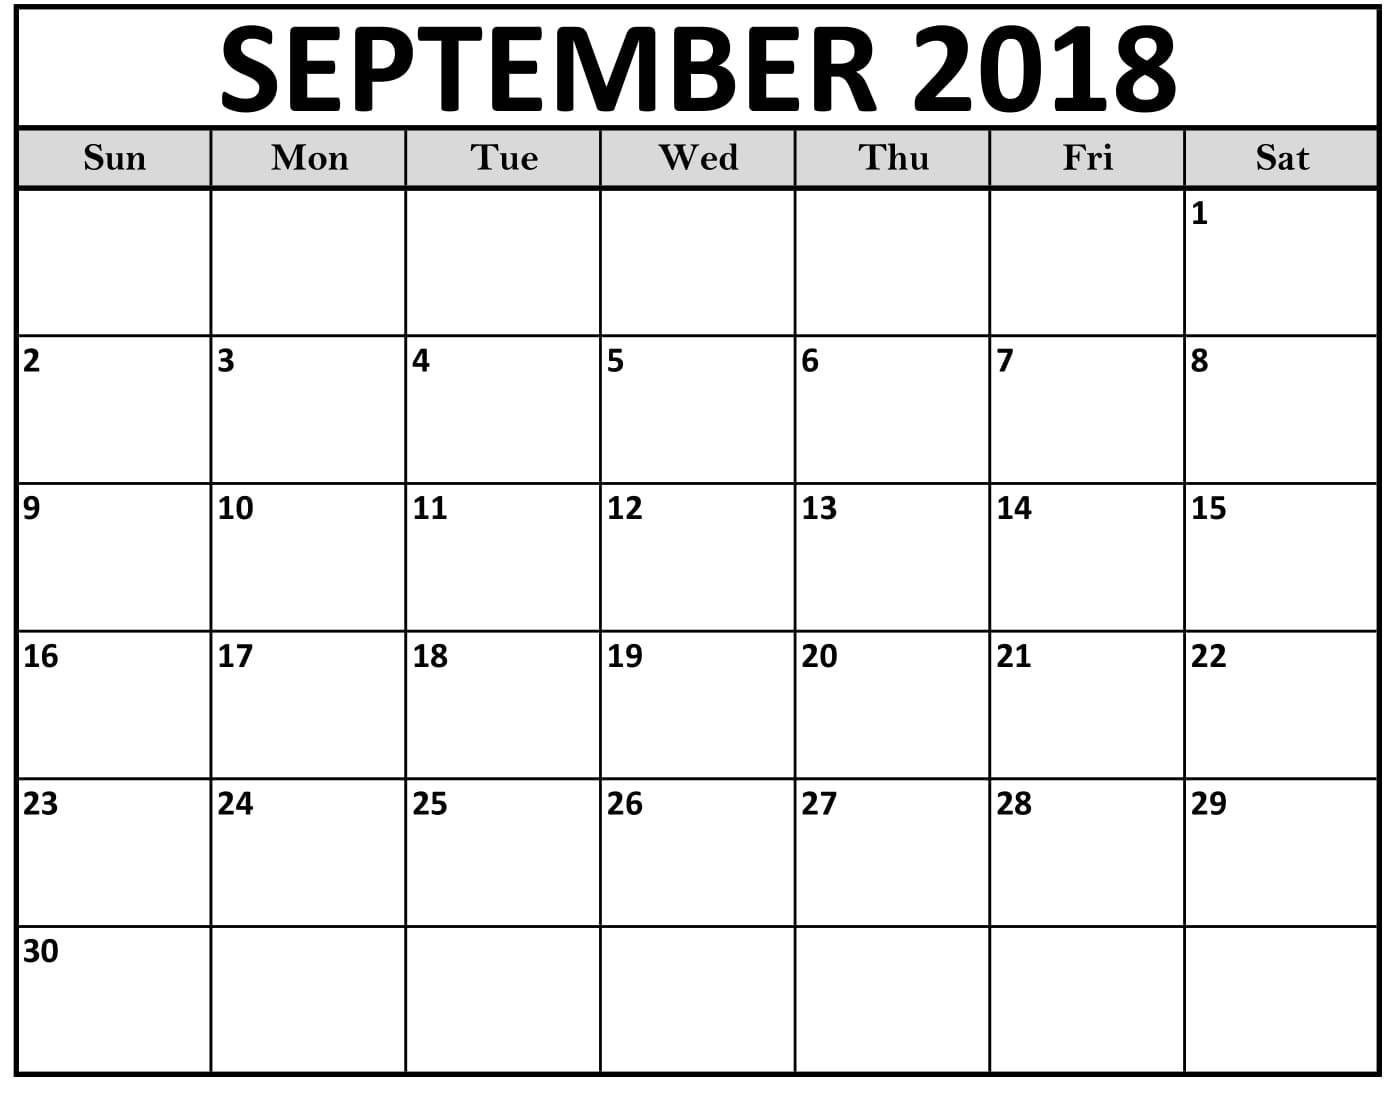 Calendar Reminder Wallpaper : Printable calendar september with reminder free